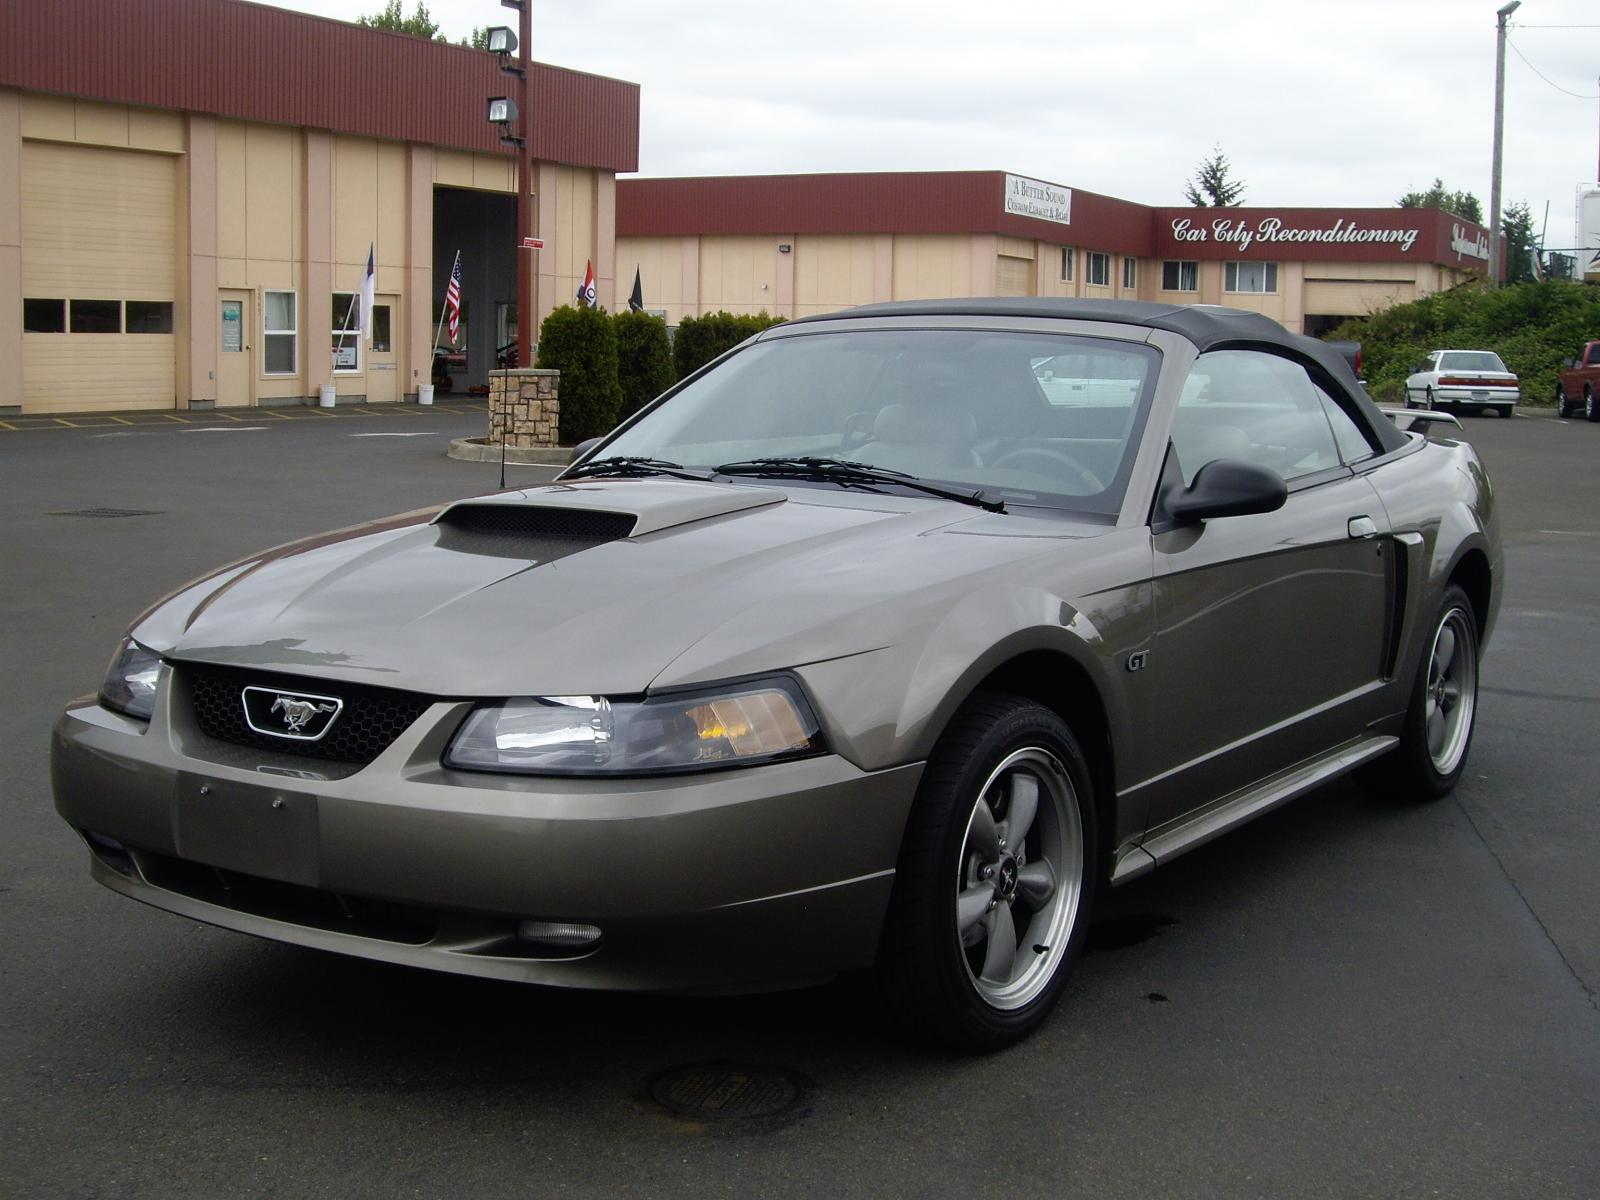 2002 ford mustang information and photos zomb drive